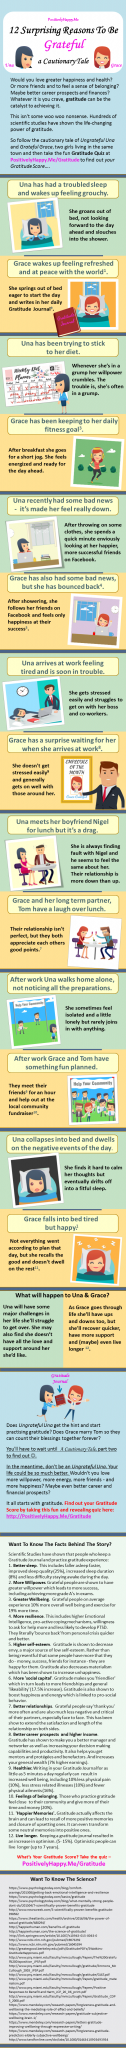 12 Little-known reasons to be grateful - infographic